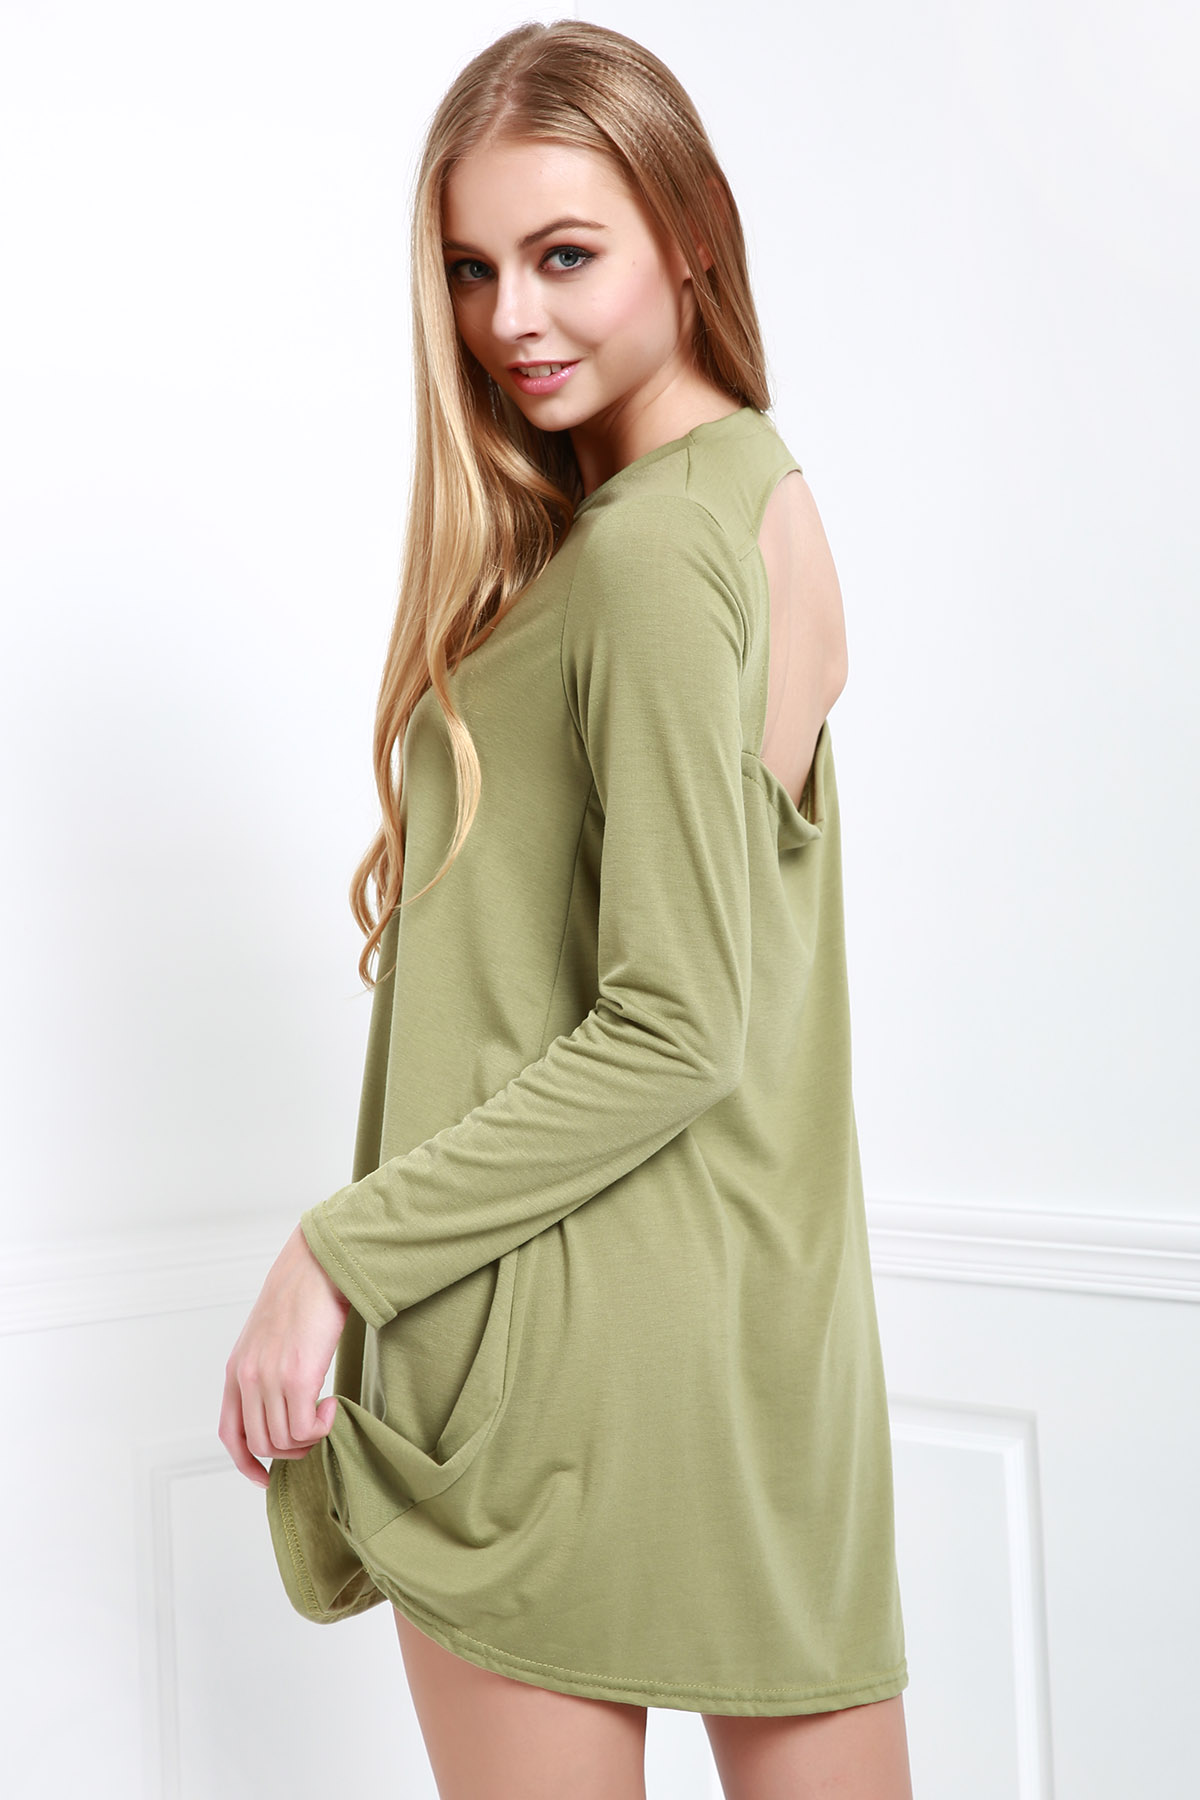 Long Sleeve Hollow Back Green Dress - ARMY GREEN S